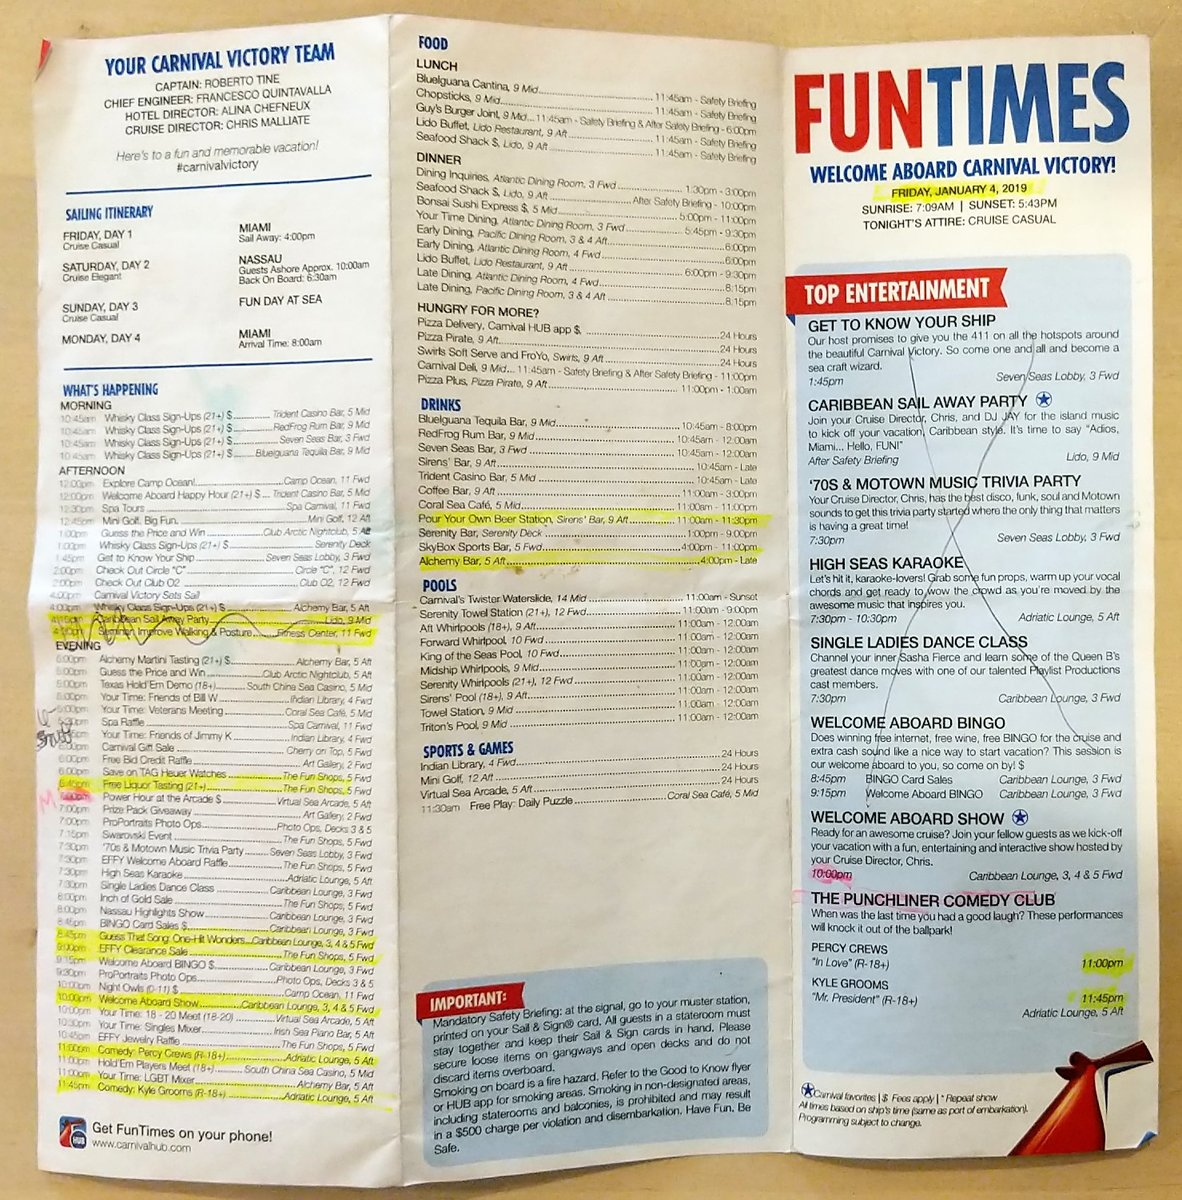 Carnival Victory Fun Times All In A Day S Play Itinerary Jan 4 7 2019 Carnival Cruise Lines Cruise Critic Community